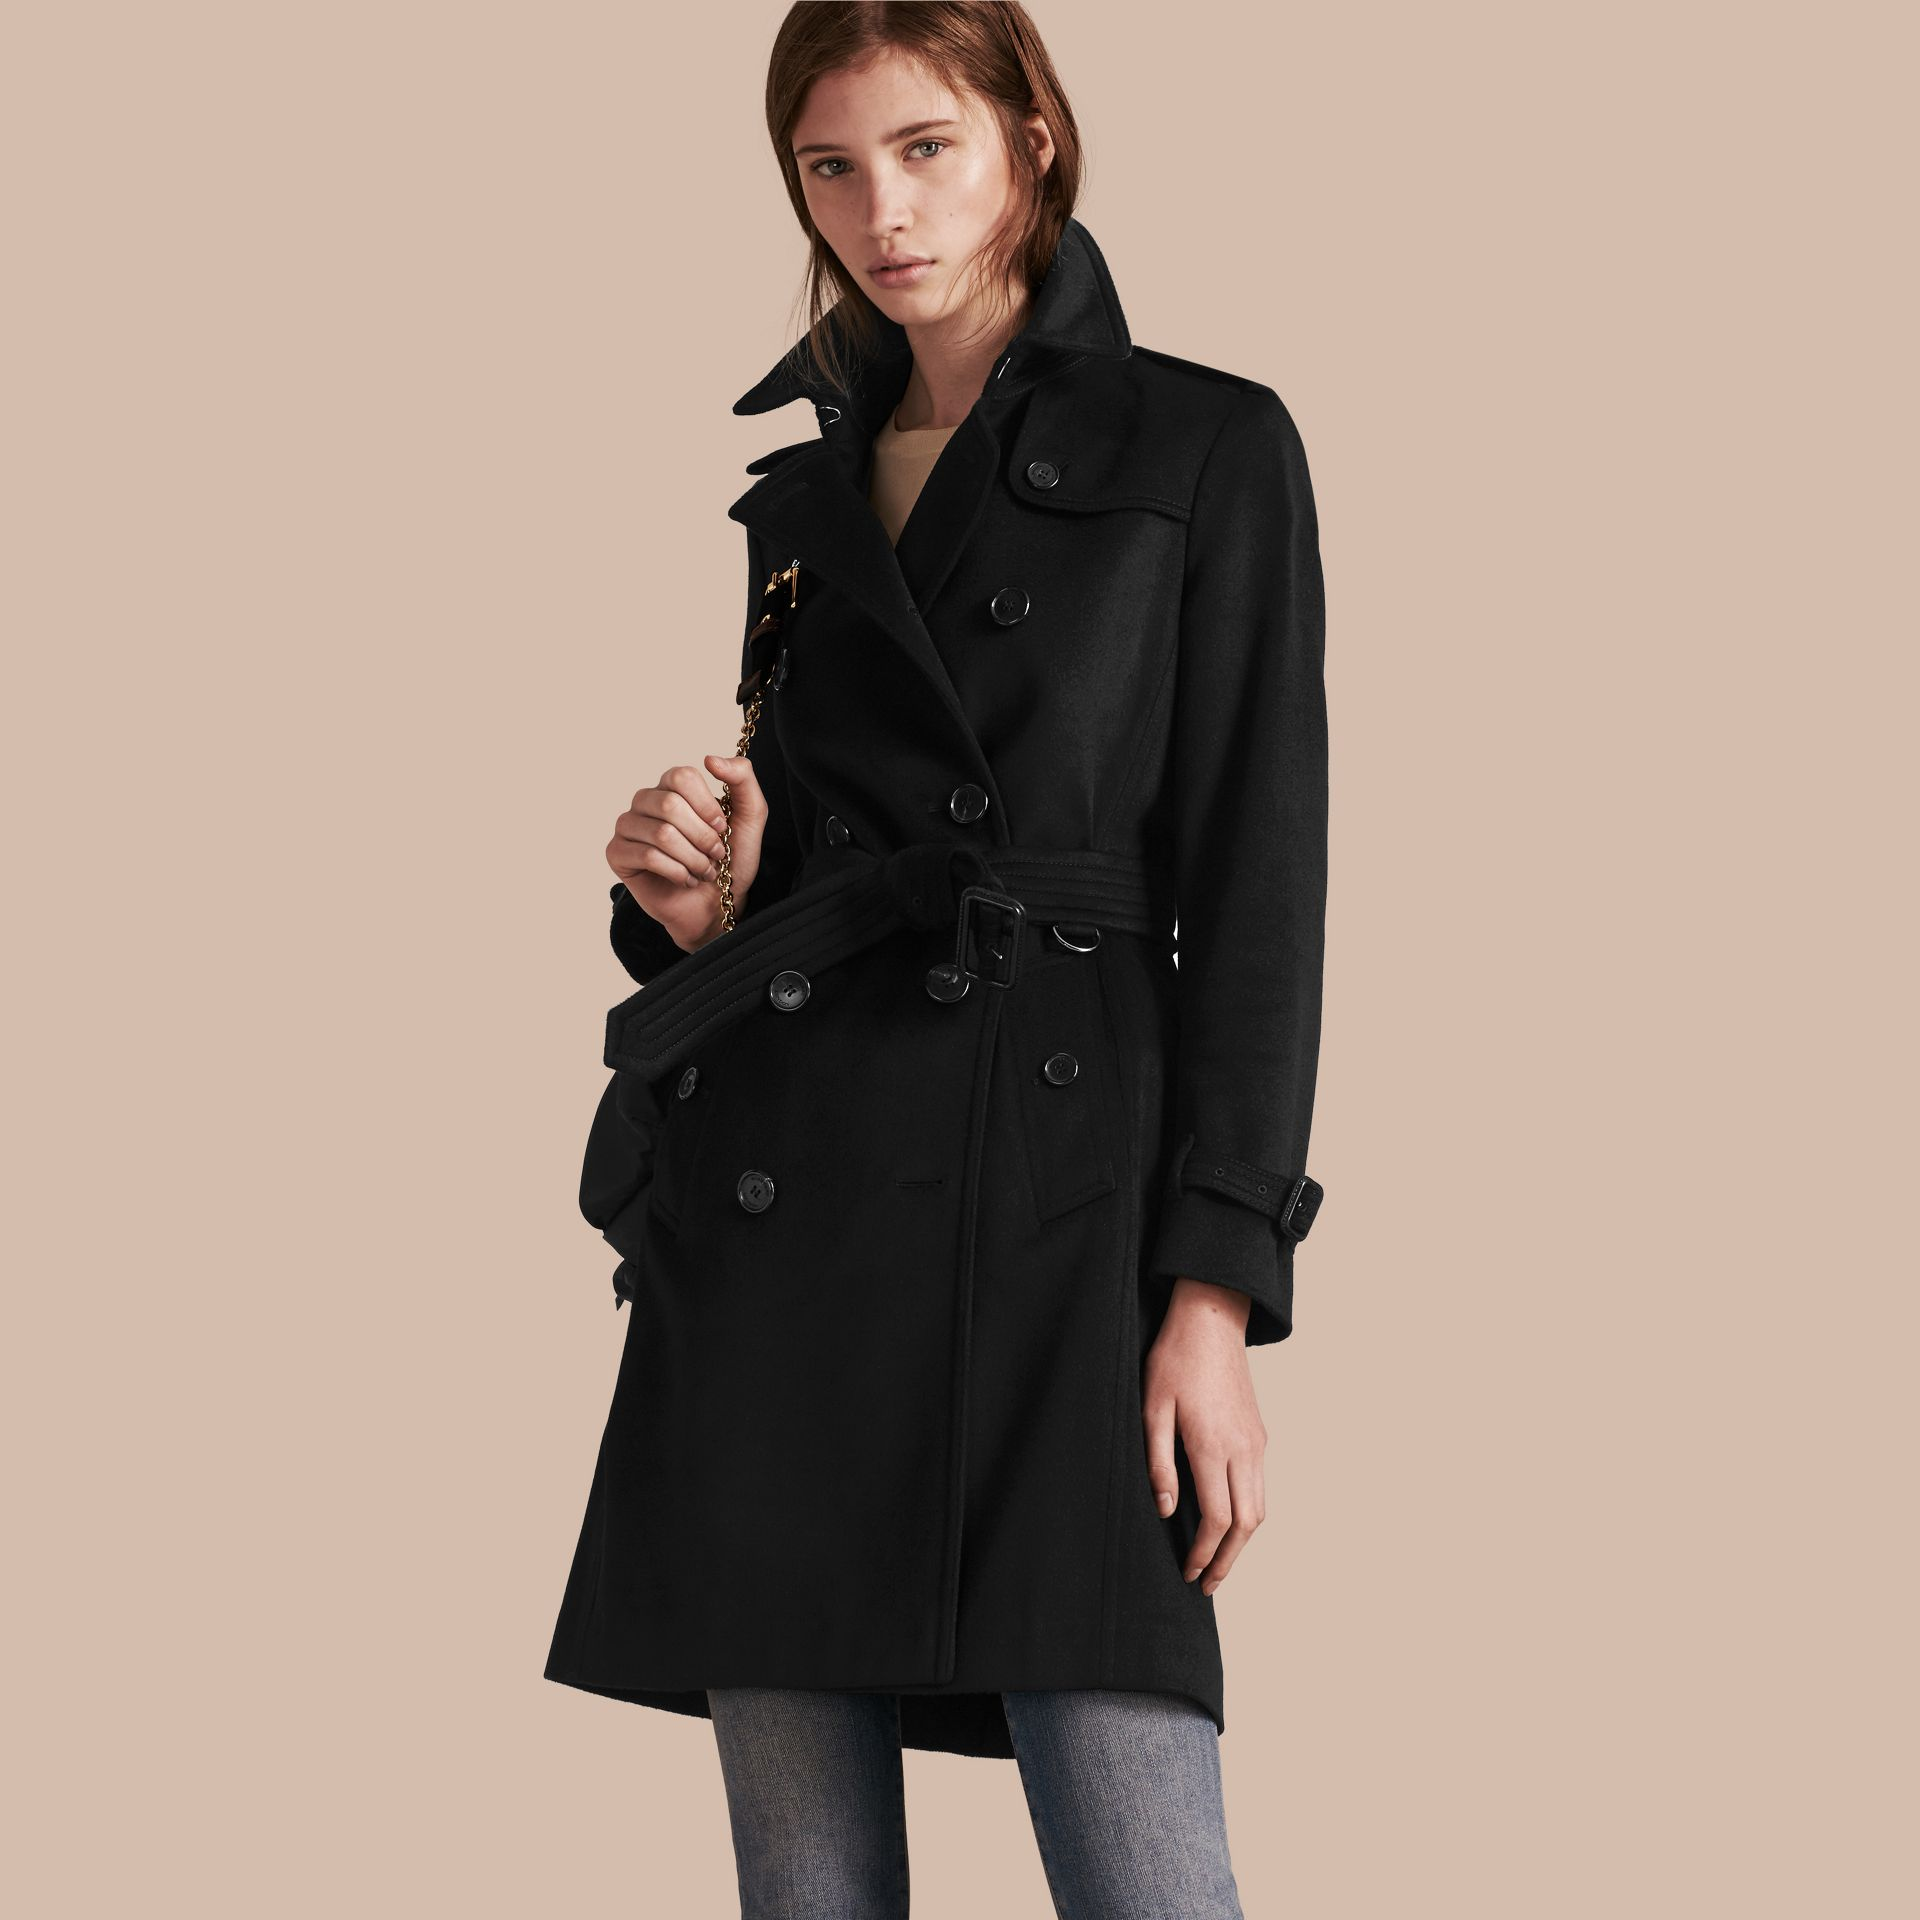 Noir Trench-coat en cachemire de coupe Kensington Noir - photo de la galerie 1